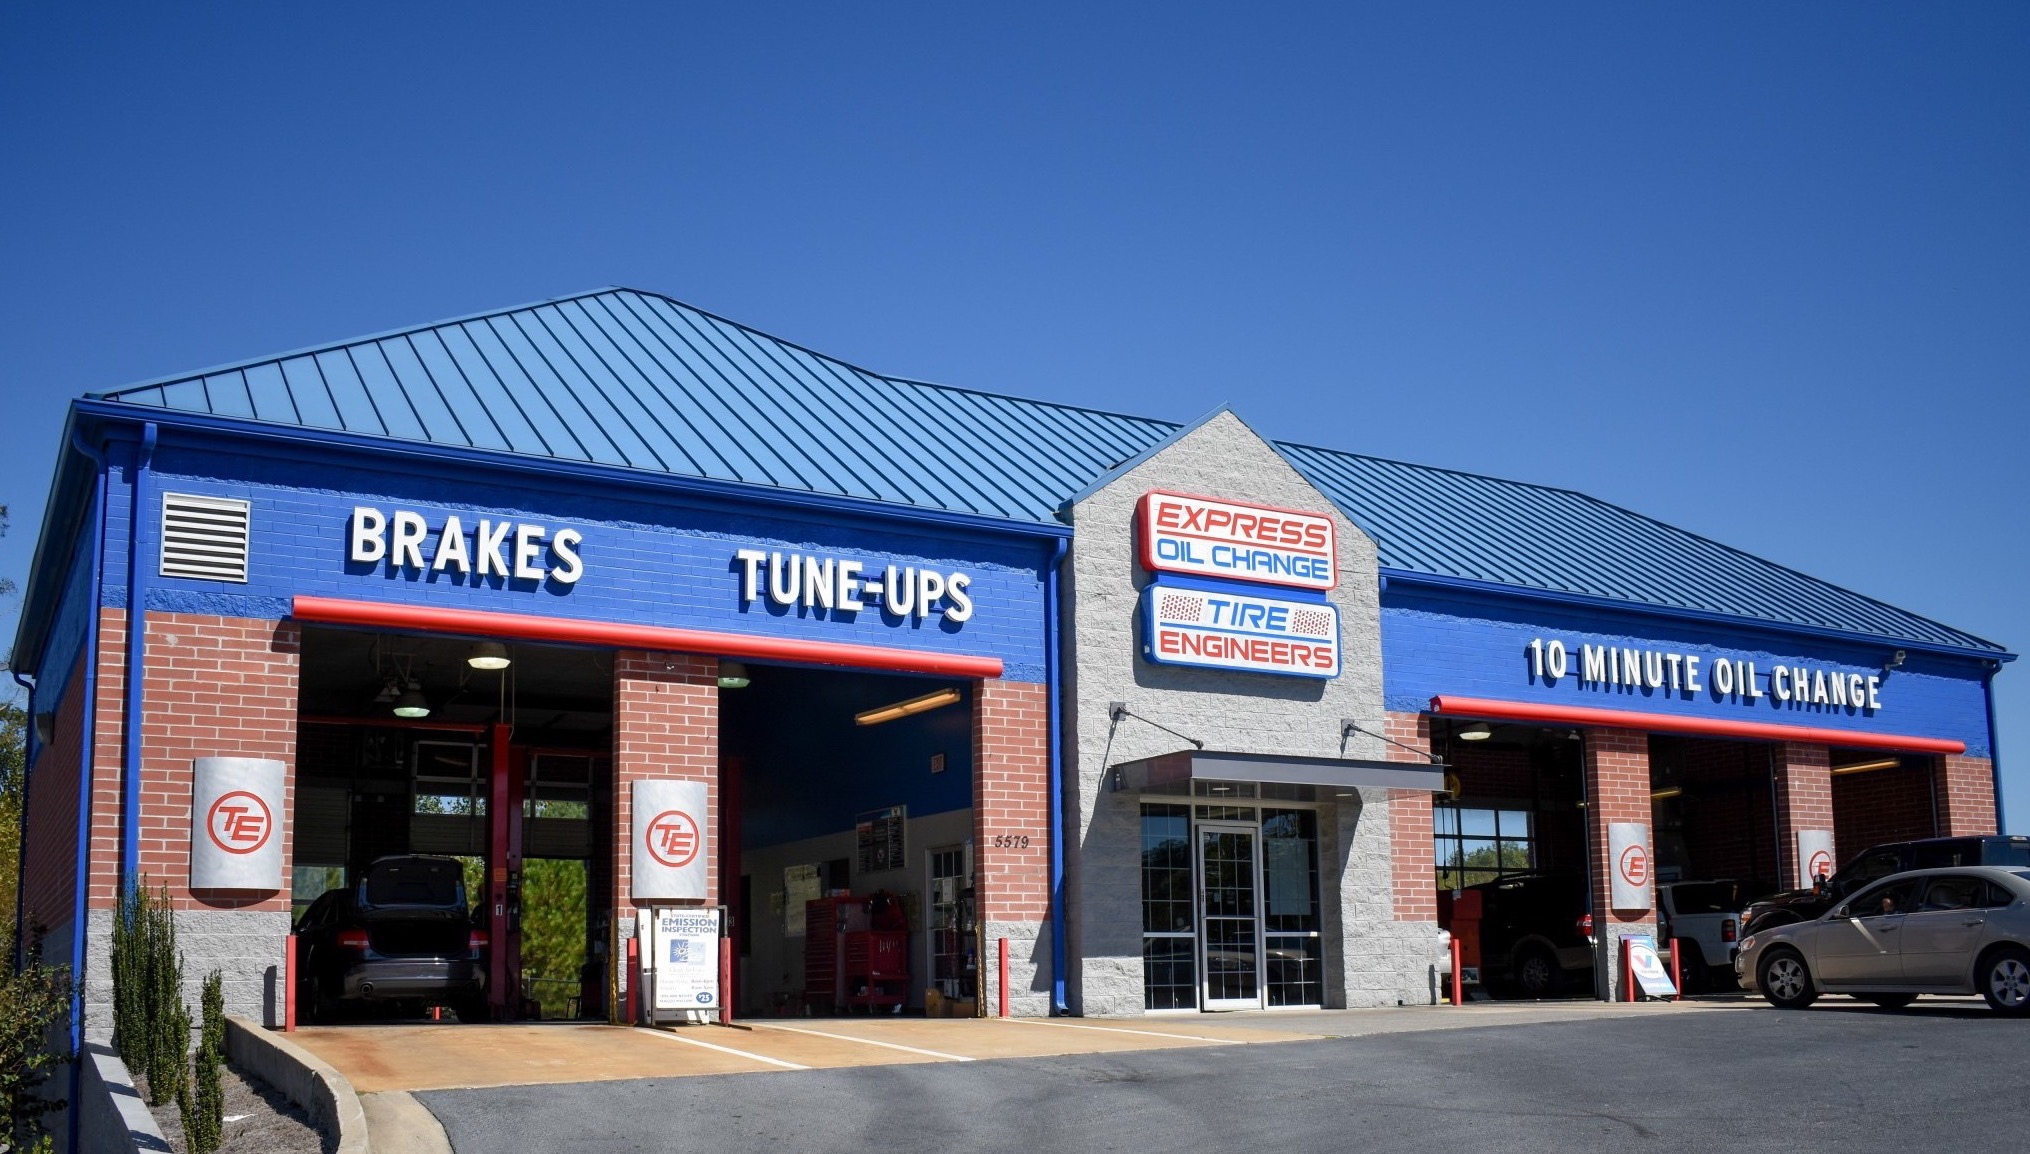 Express Oil Change & Tire Engineers Hiram, GA store